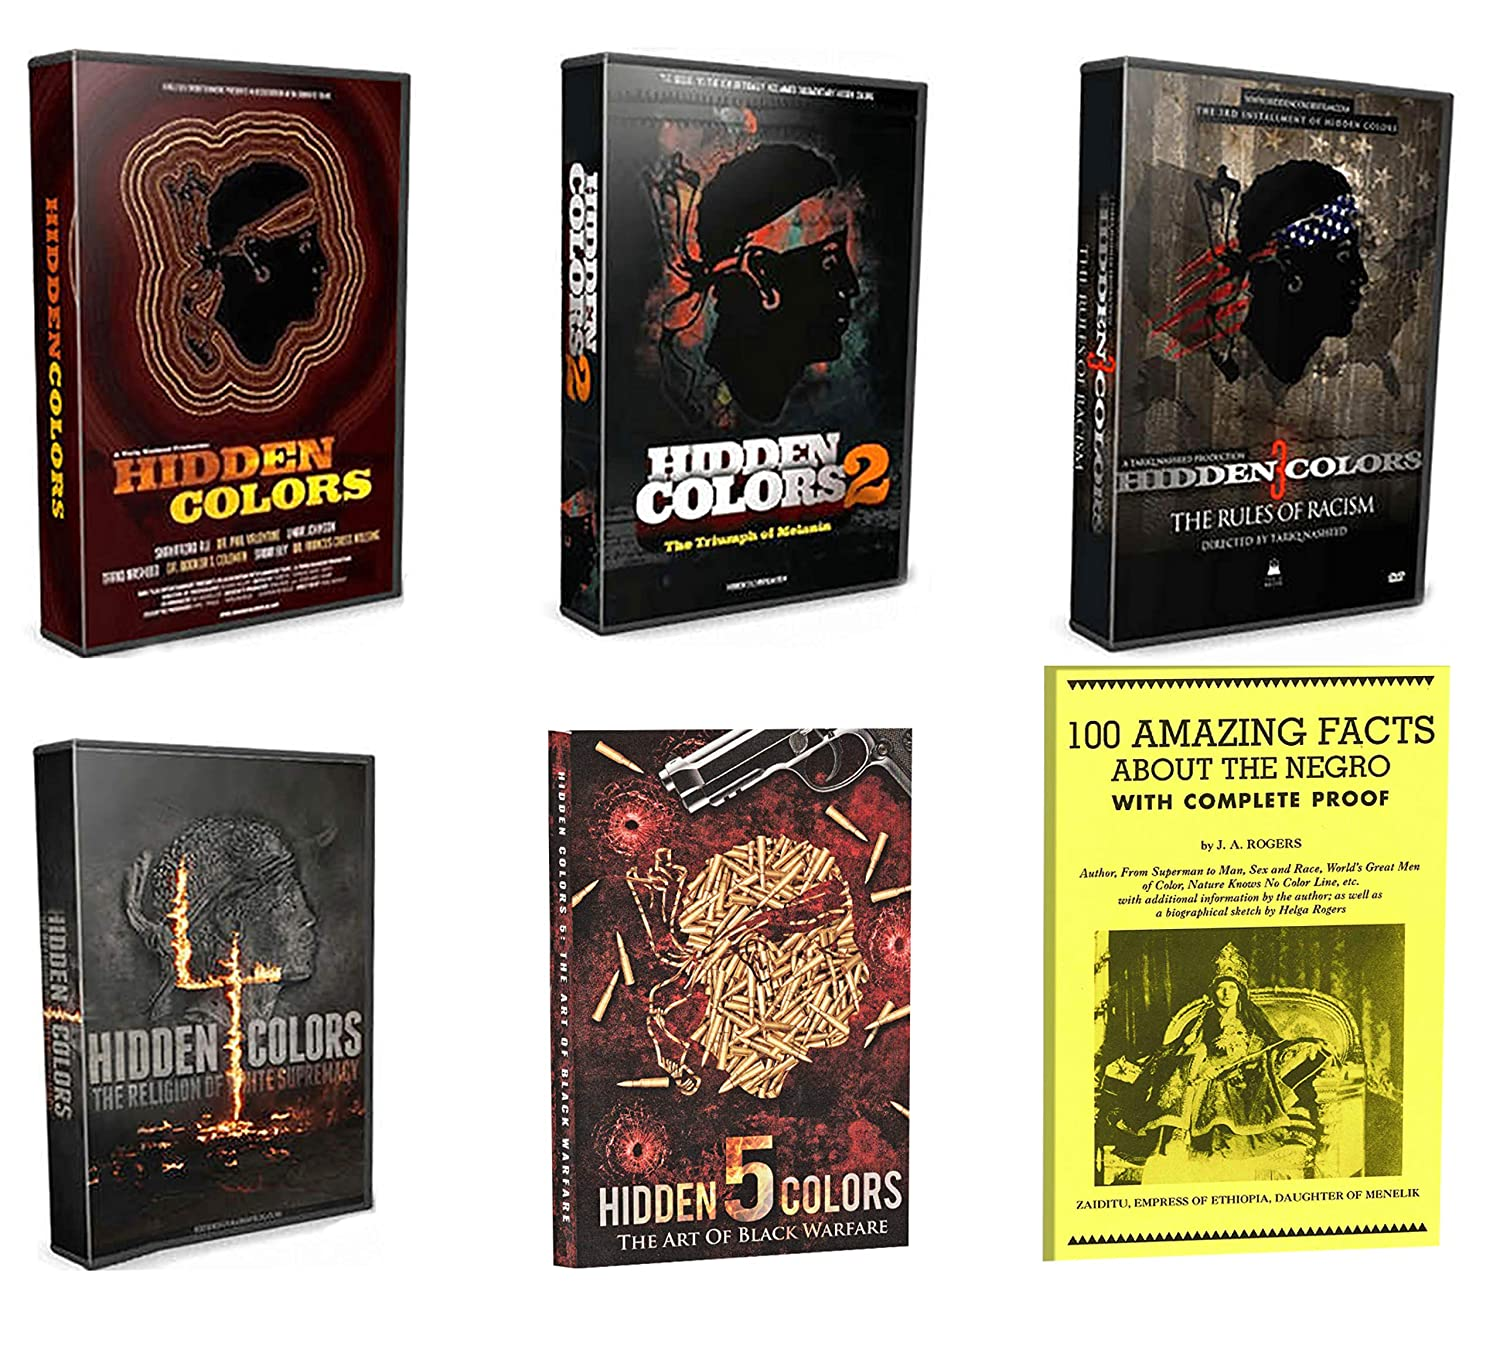 Amazon Com Tariq Nasheed Hidden Colors 1 5 Complete Documentary Dvd Series Volumes 1 2 3 4 5 Plus Bonus Book James Augustus Rogers Tariq Nasheed Ice T David Banner Michael Jai White